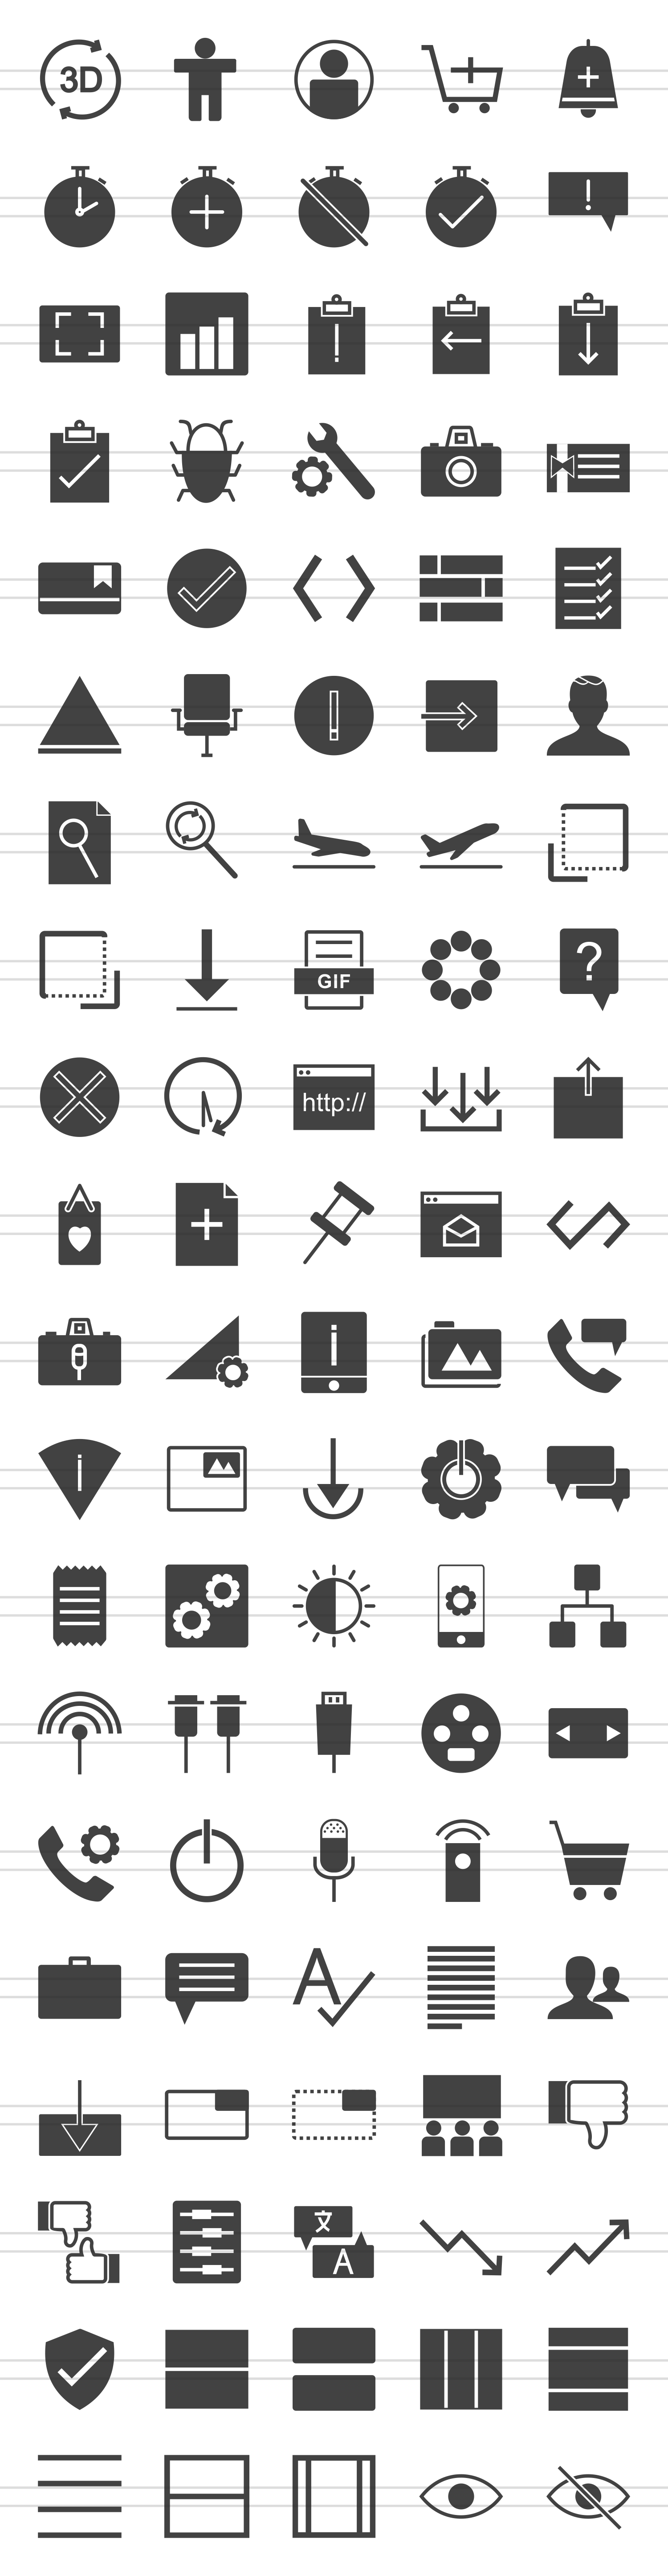 100 Material Design Glyph Icons example image 2